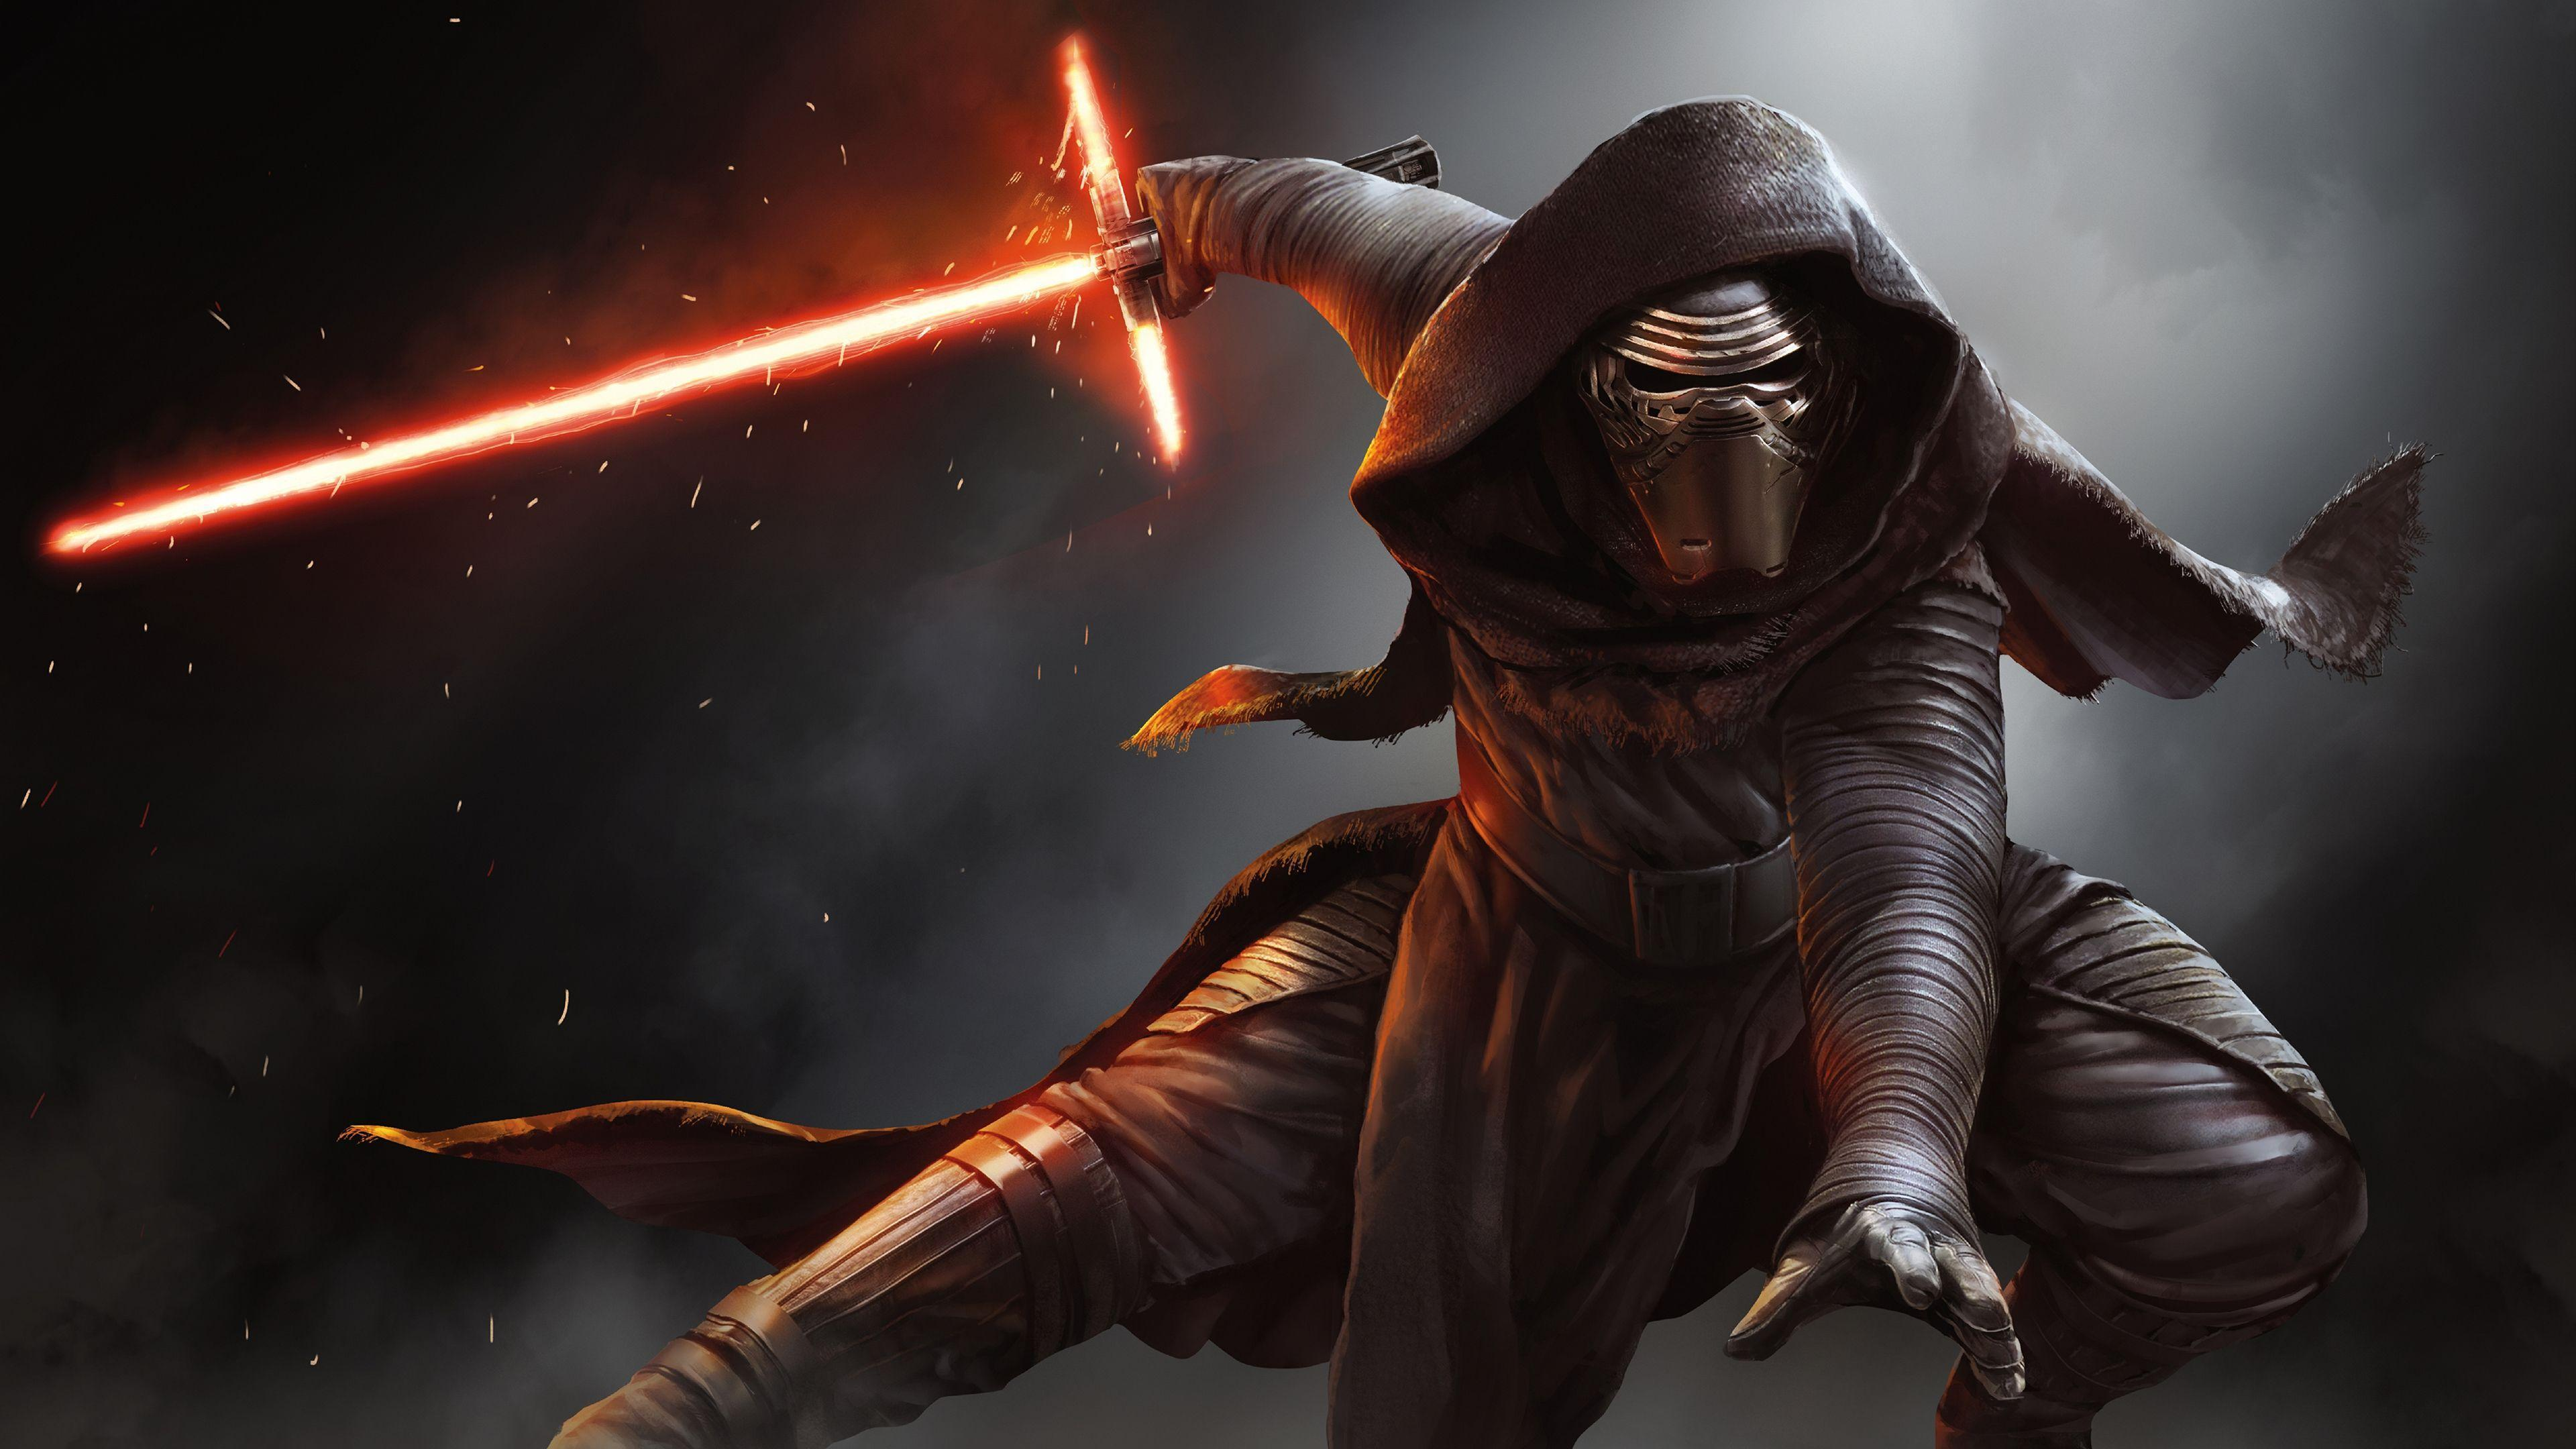 kylo ren « Awesome Wallpapers